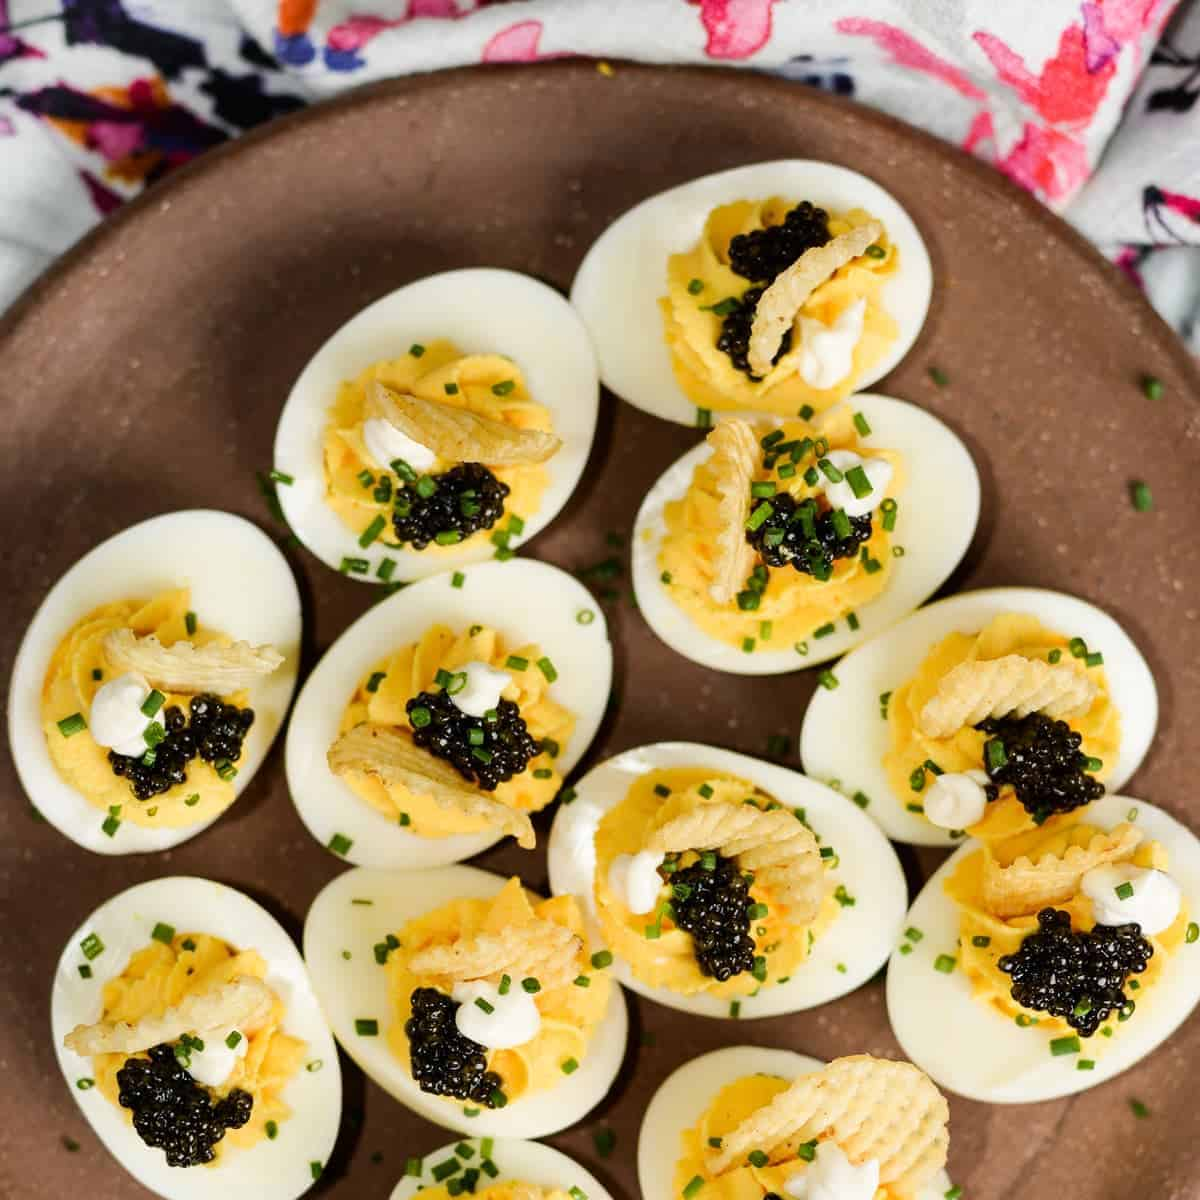 Unpretentiously fancy deviled eggs with caviar and potato chips.